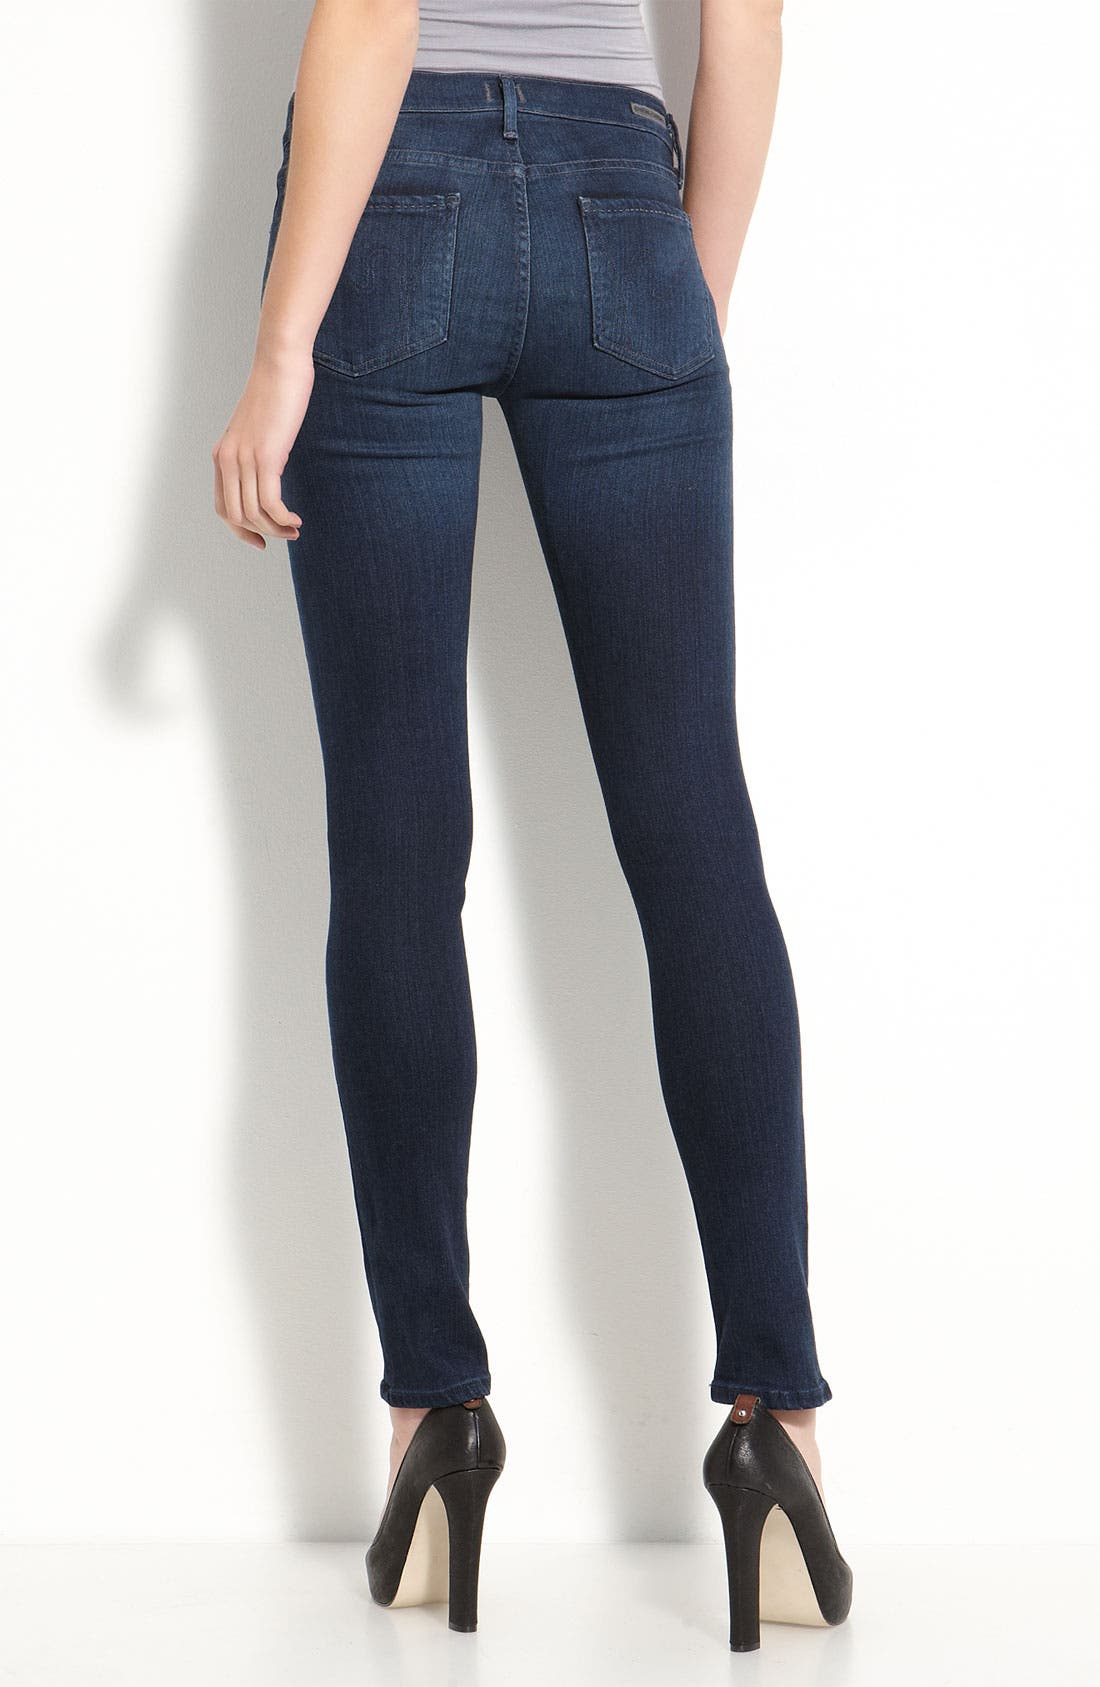 Alternate Image 1 Selected - Citizens of Humanity 'Second Skin' Stretch Denim Jeans (Satellite Wash)